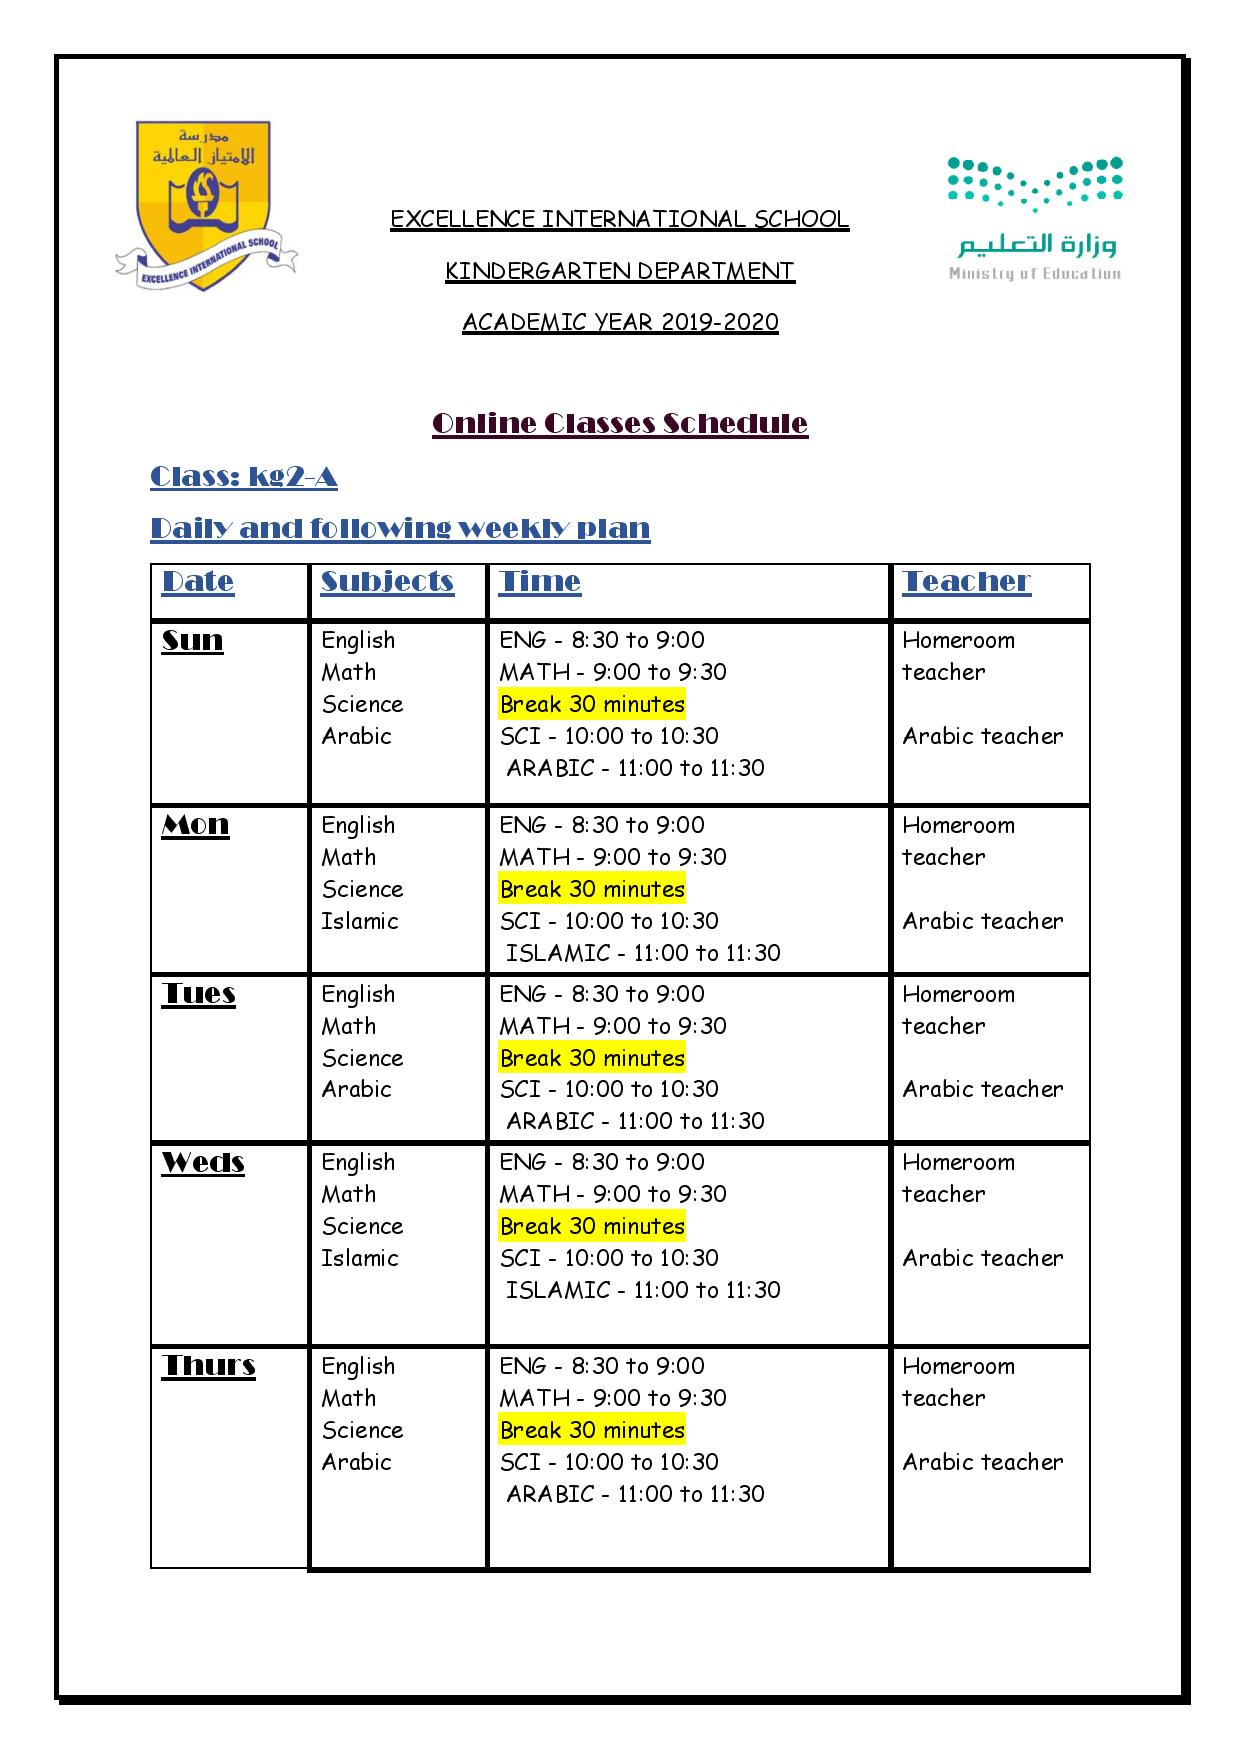 Online Classes Schedule 2 page 002 9c3cd